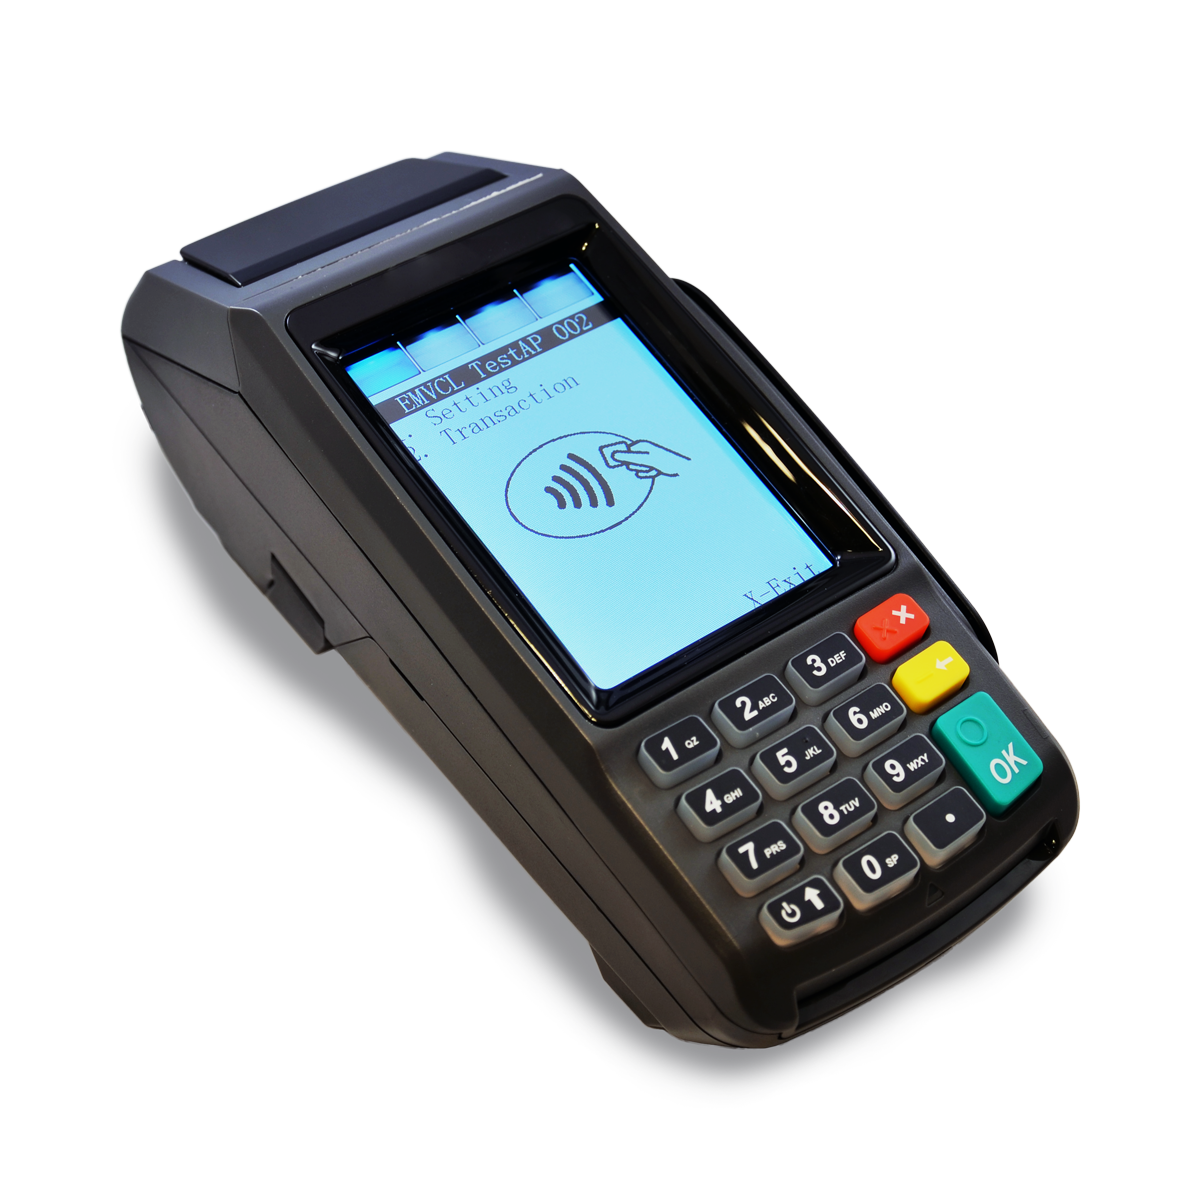 transaction terminal pos Must have experience with pos terminals, atms and ecommerce transaction processing.